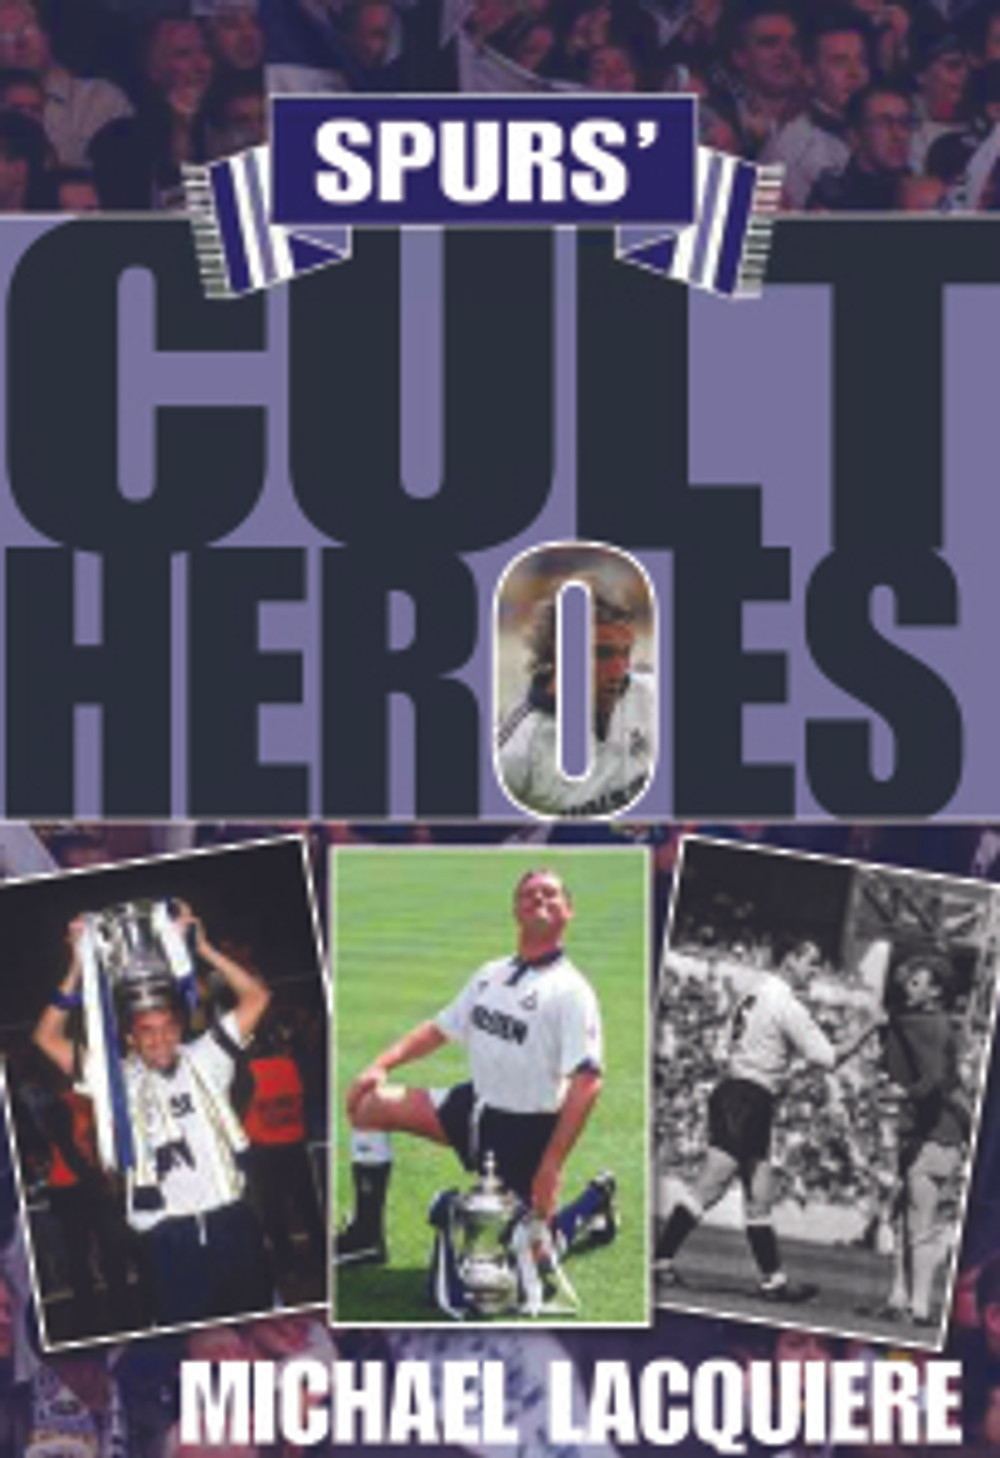 Spurs Cult Heroes book cover